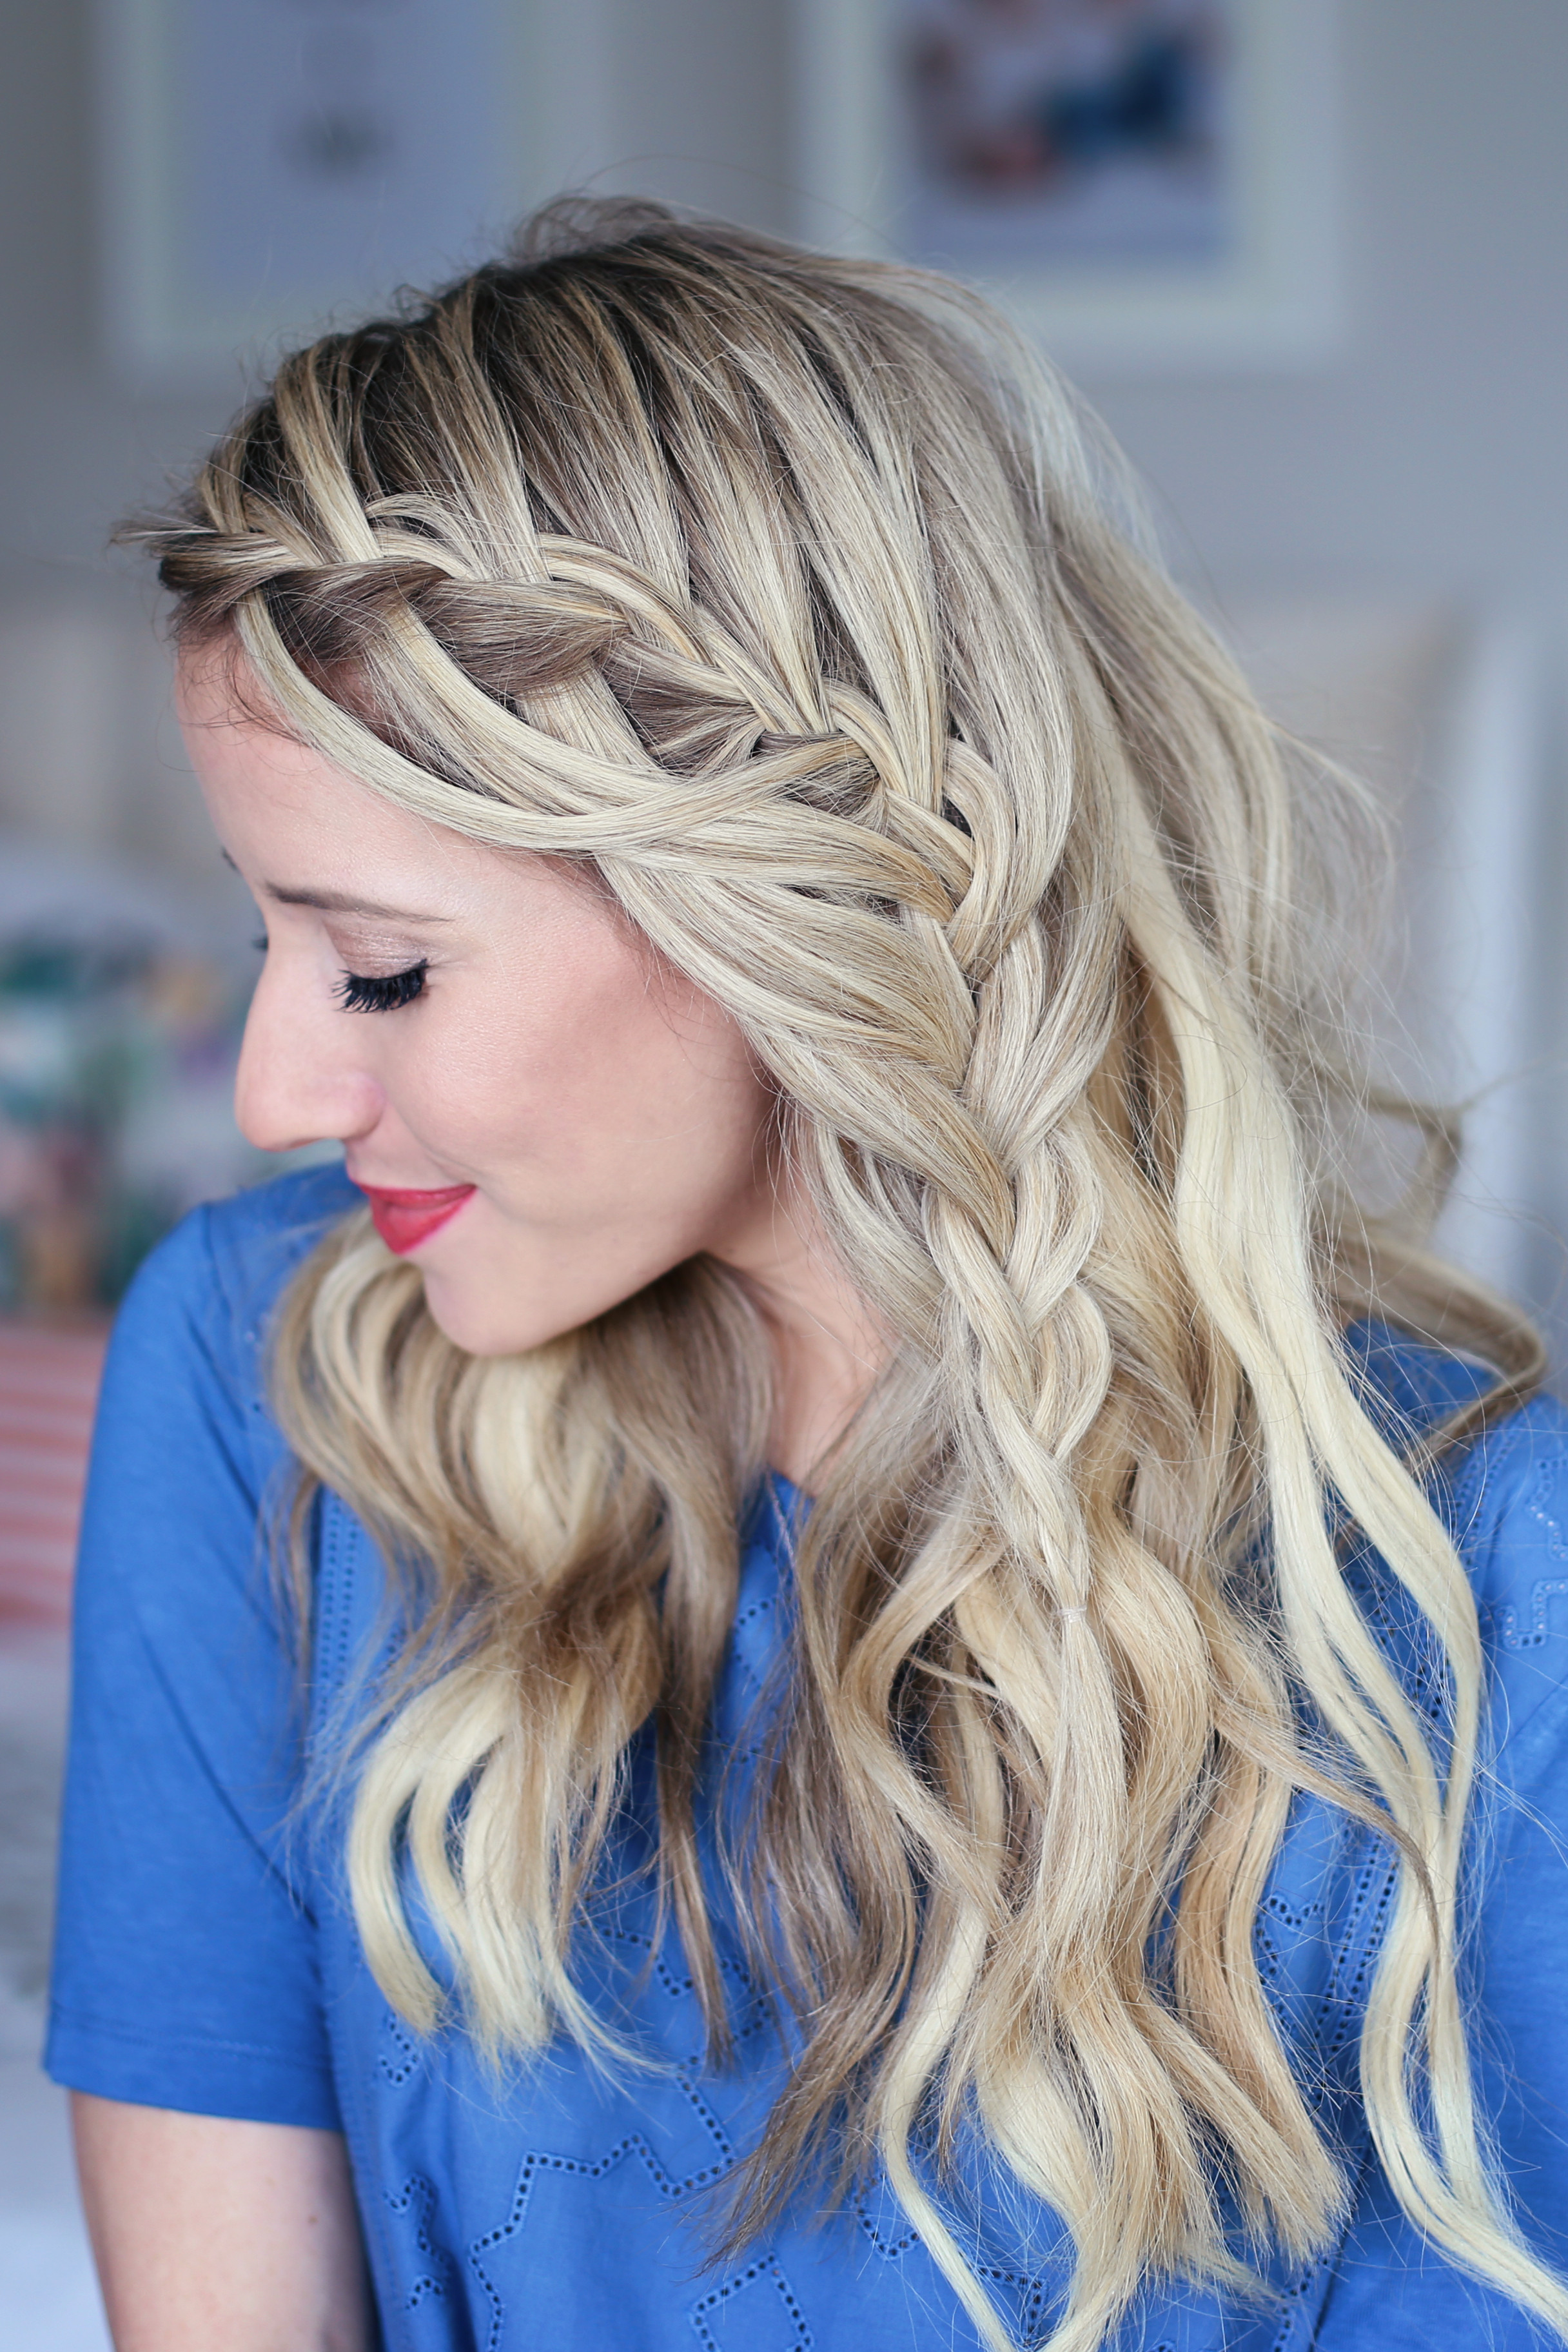 Best ideas about Pretty Girls Hairstyles . Save or Pin 3 in 1 Cascading Waterfall Build able Hairstyle Now.